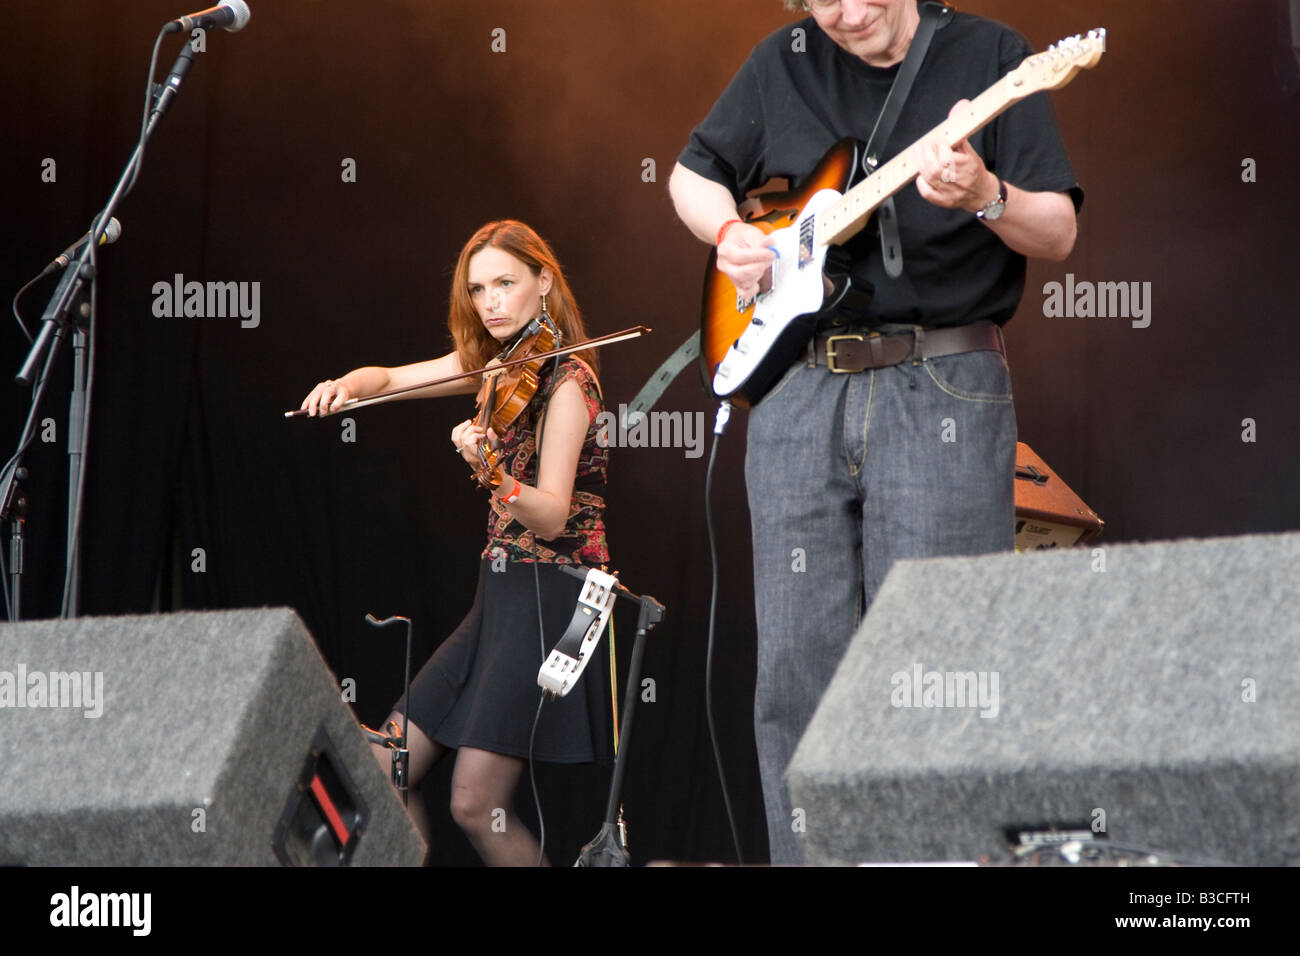 Stackridge on stage at Fairport's Cropredy Convention music festival 2008 near Banbury England UK - Stock Image